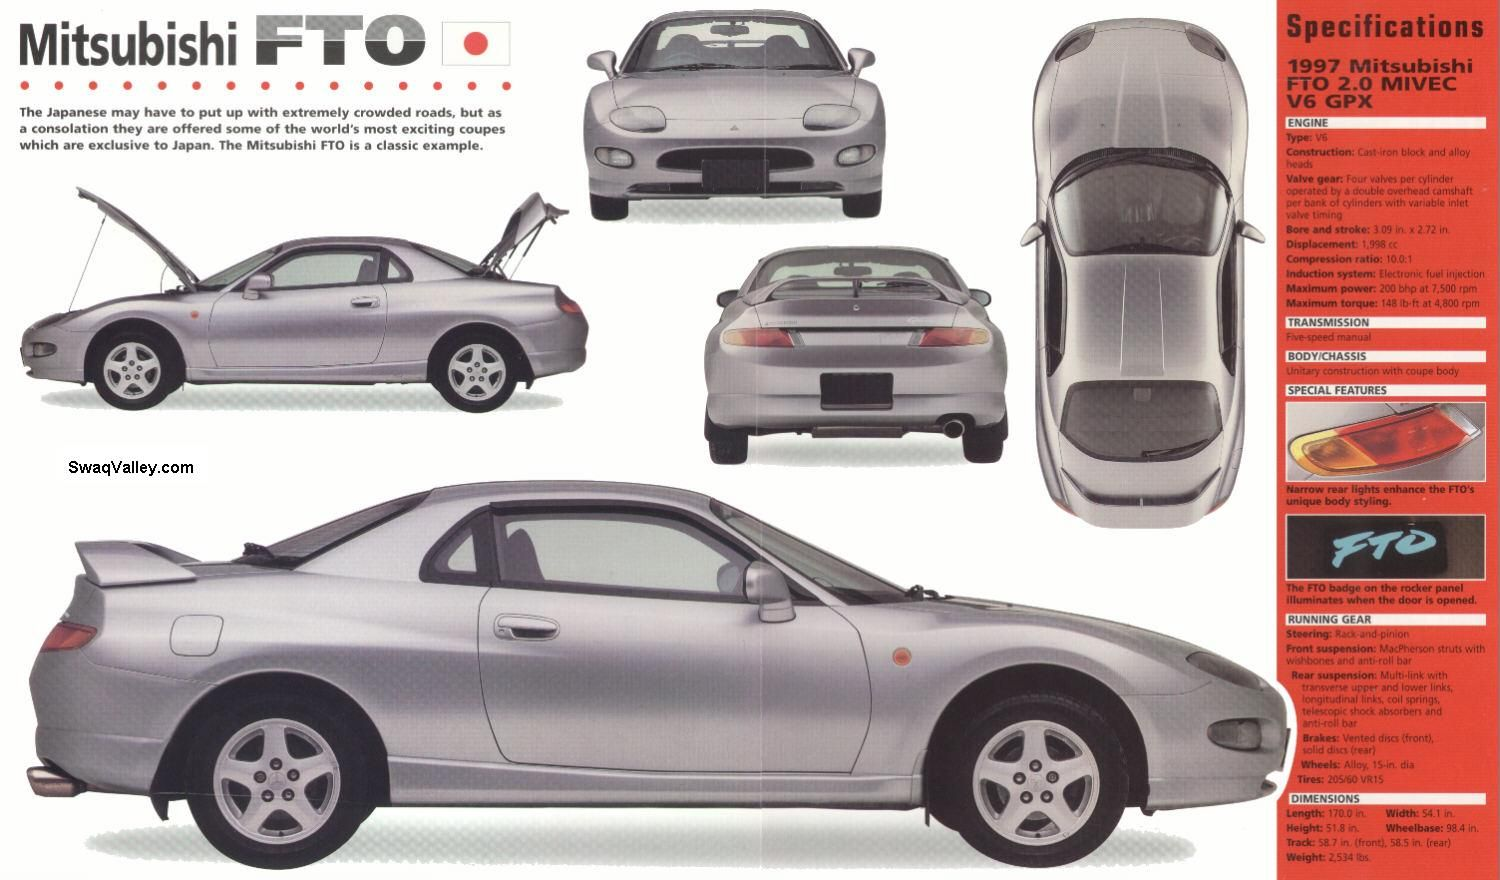 I miss this car, the '97 Mitsubishi FTO GPX